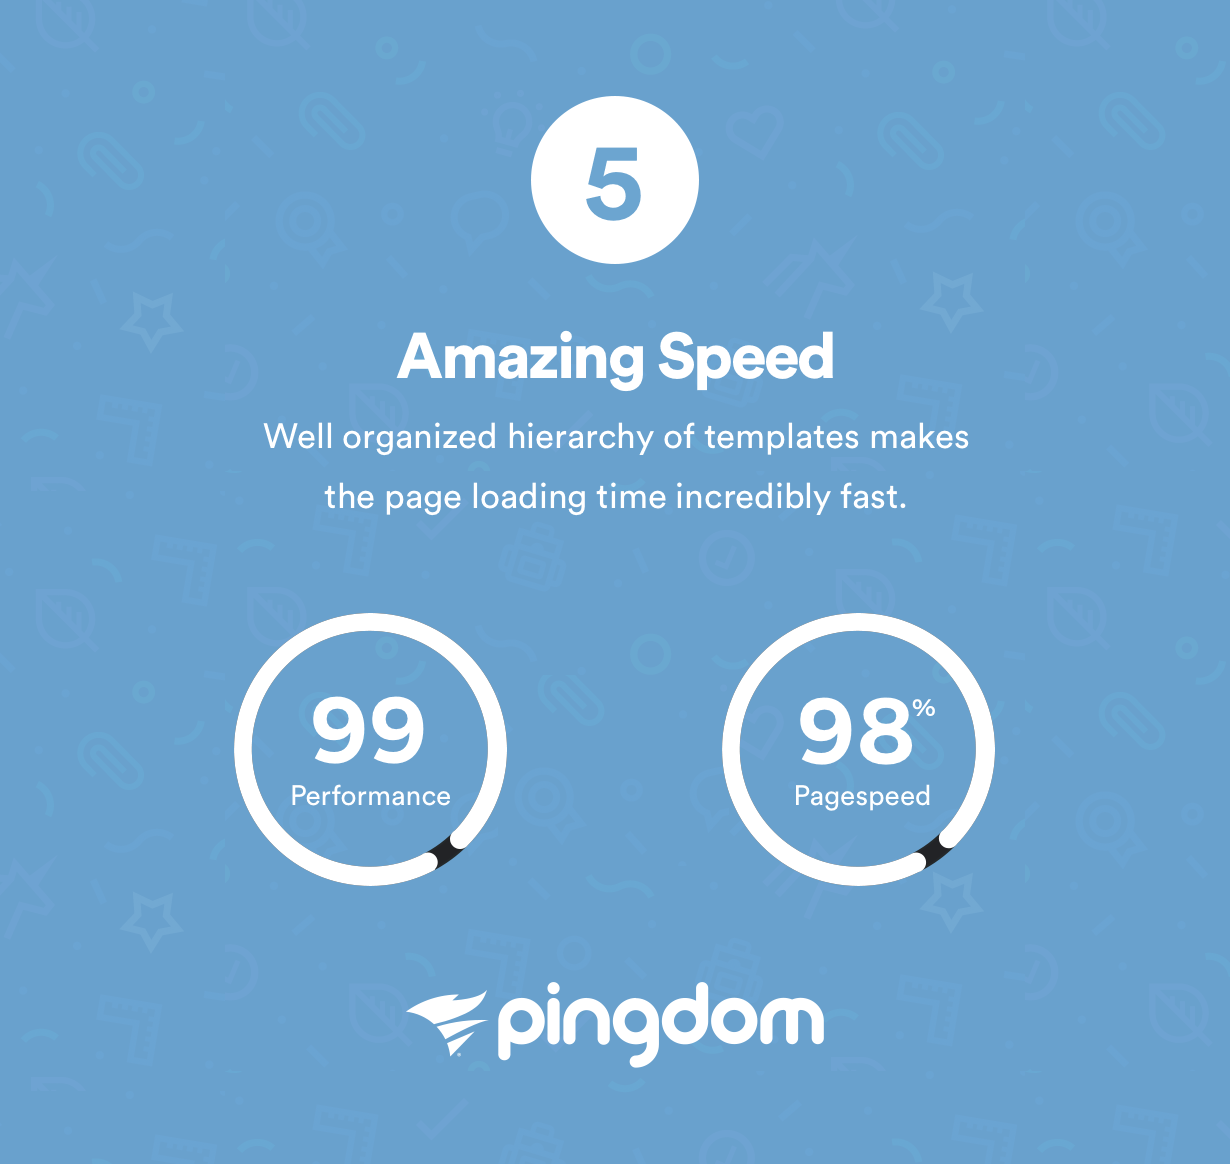 Incredible Speed